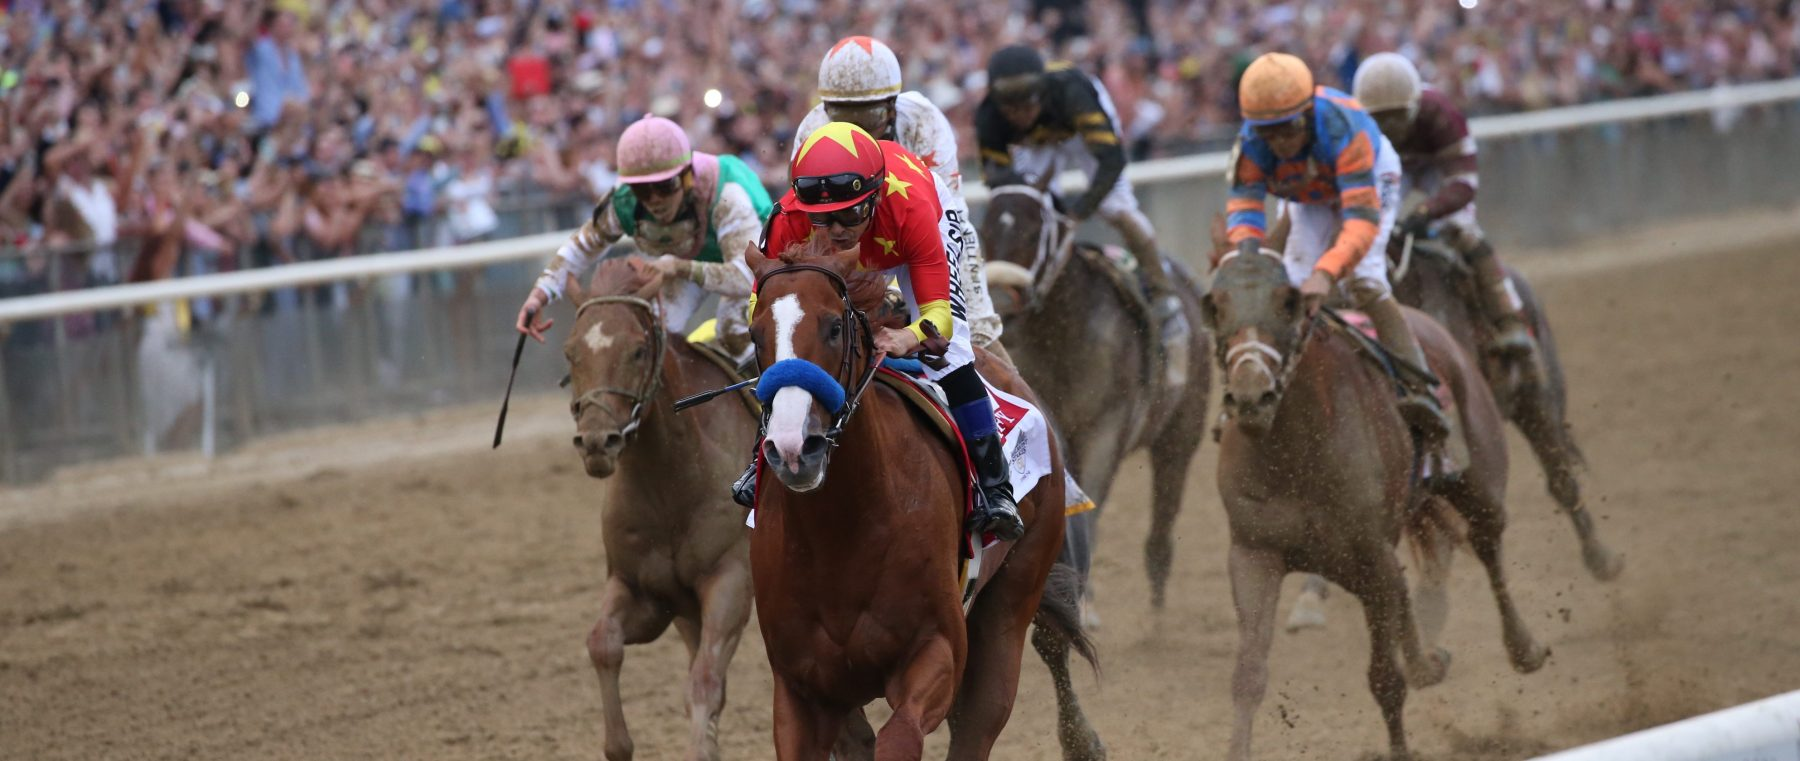 Justify with Mike Smith up wins the Belmont Stakes and Triple Crown for trainer Bob Baffert at Belmont Park Racetrack on June 09, 2018 in Elmont, New York (Photo by Horsephotos/Getty Images)